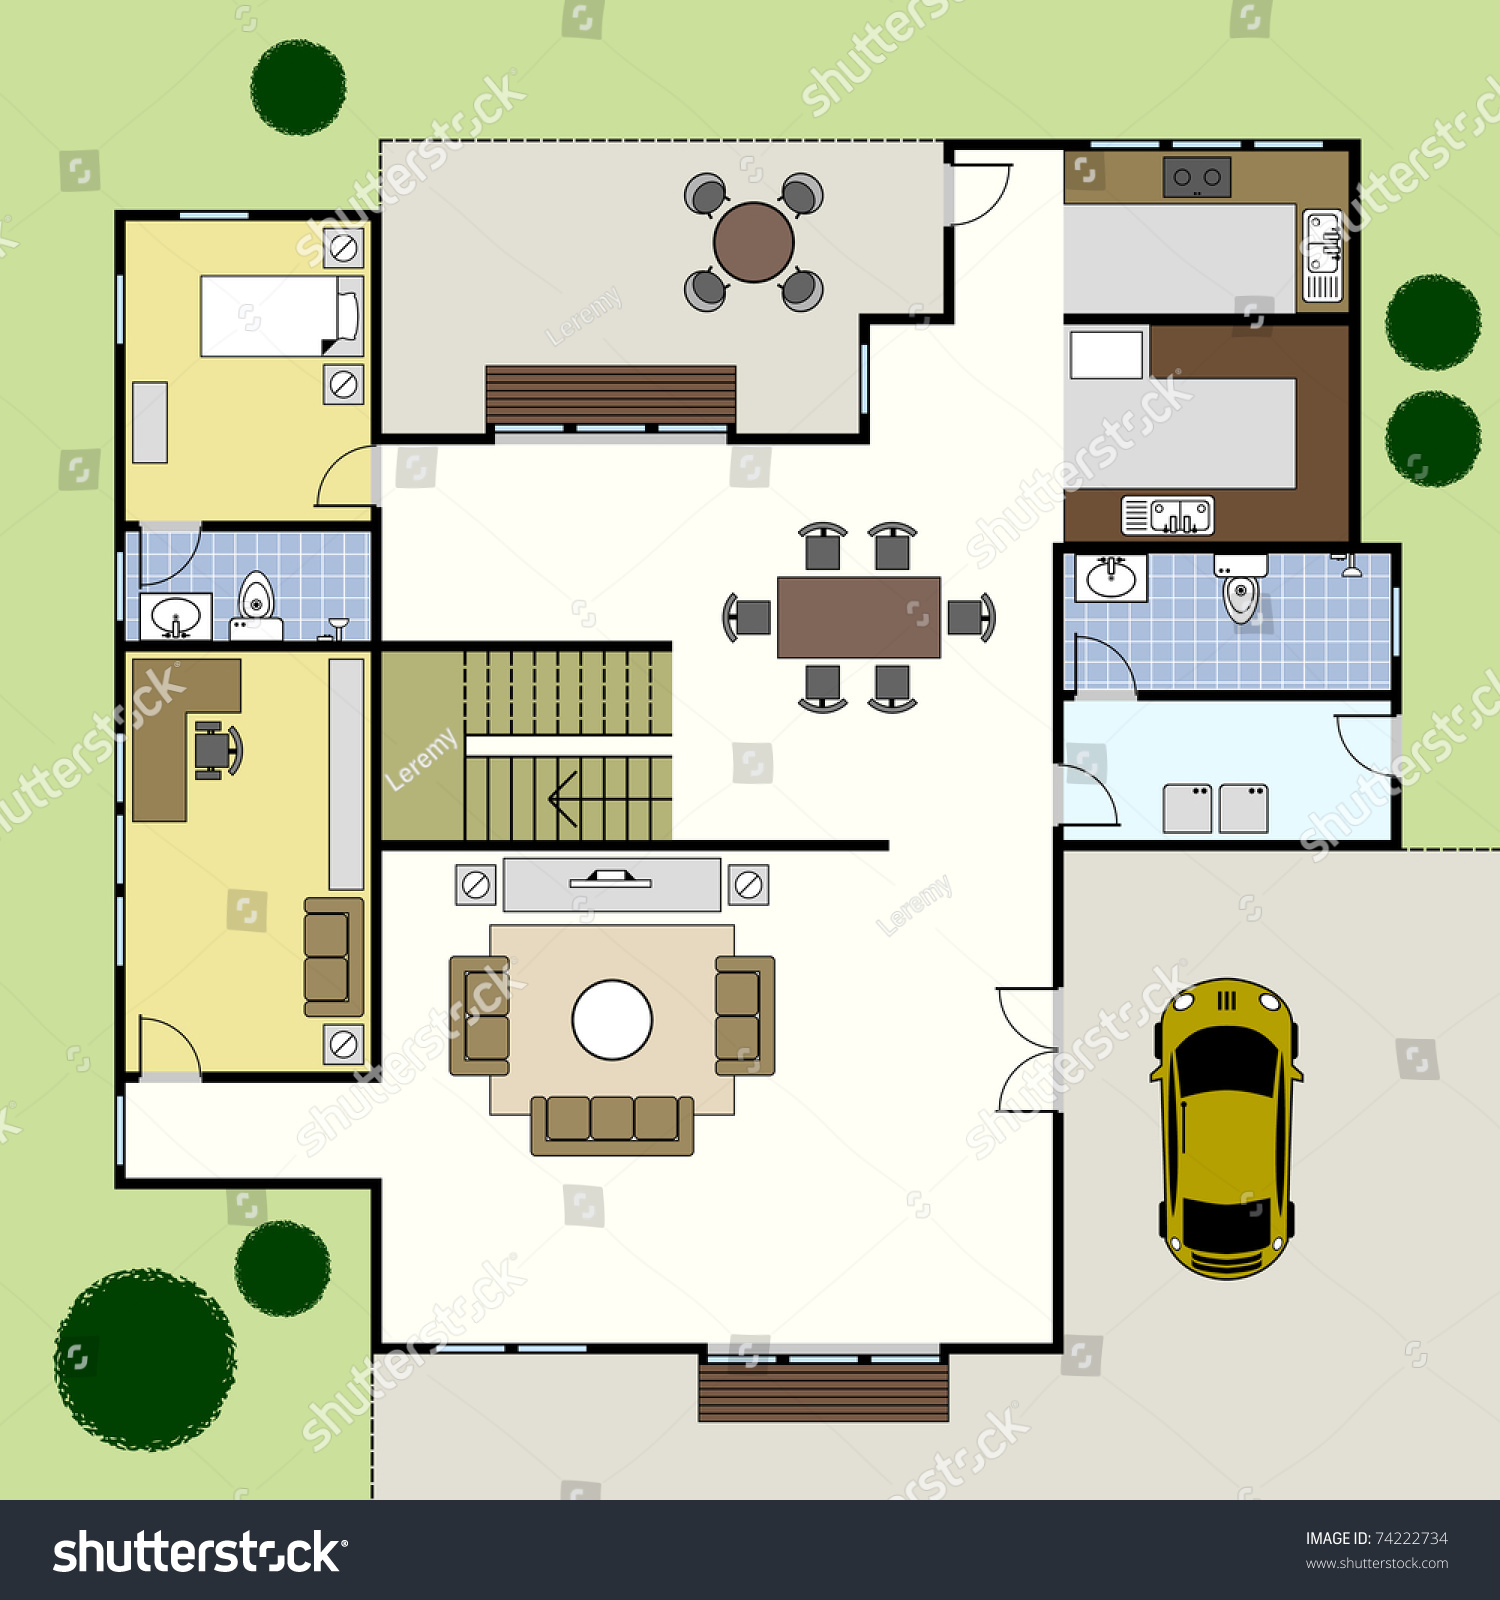 ground floor plan floorplan house home building architecture blueprint layout - Plan Of House